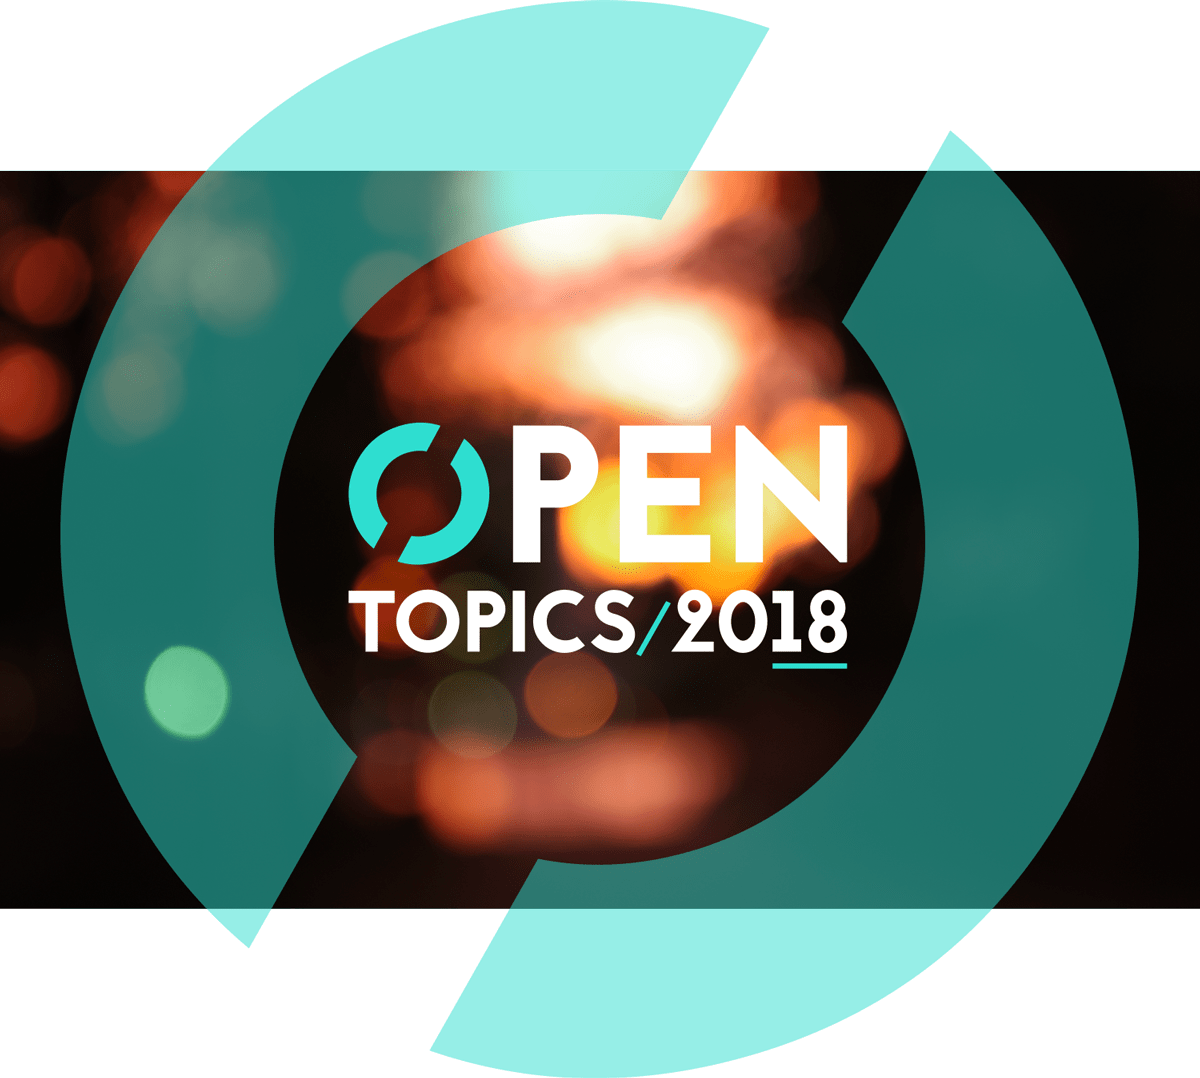 case by case nyc OPEN-Topics-2018-OPEN-Topics-2018-Logo-Image-min.png